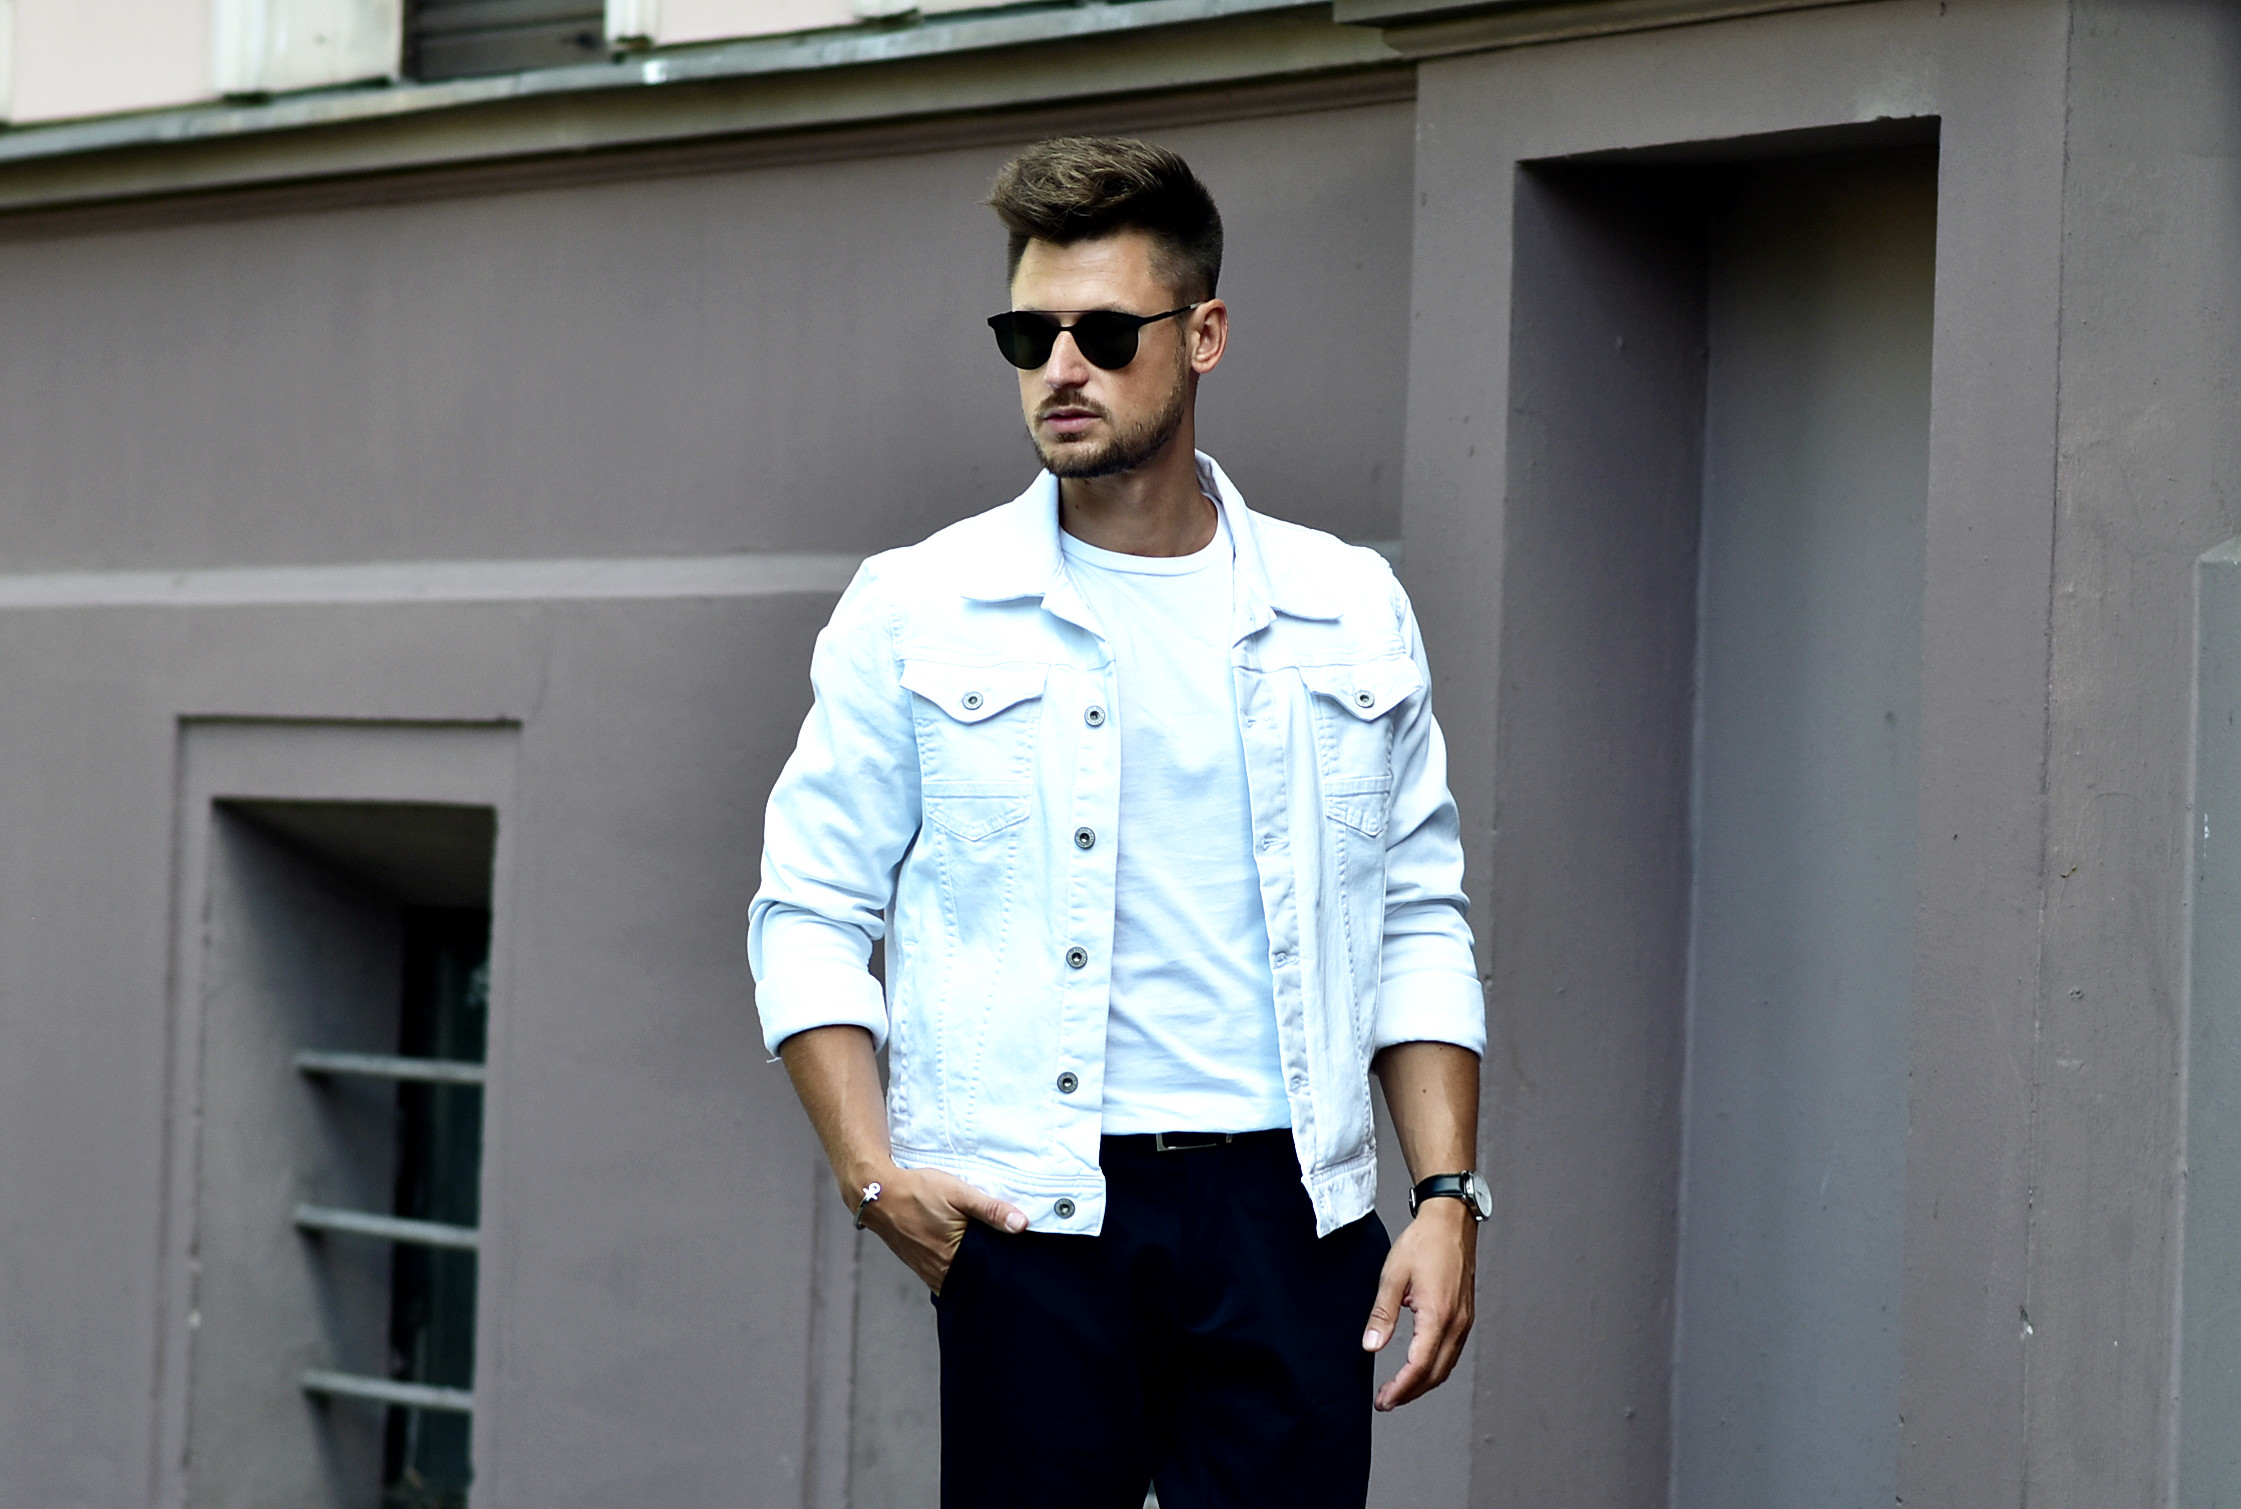 Tommeezjerry-Styleblog-Männerblog-Männer-Modeblog-Berlin-Berlinblog-Männermodeblog-Outfit-Cropped-Fit-Hose-Sommerlook-Carrera-Classy-Chic-Pepe-Jeans-Adias-Superstar